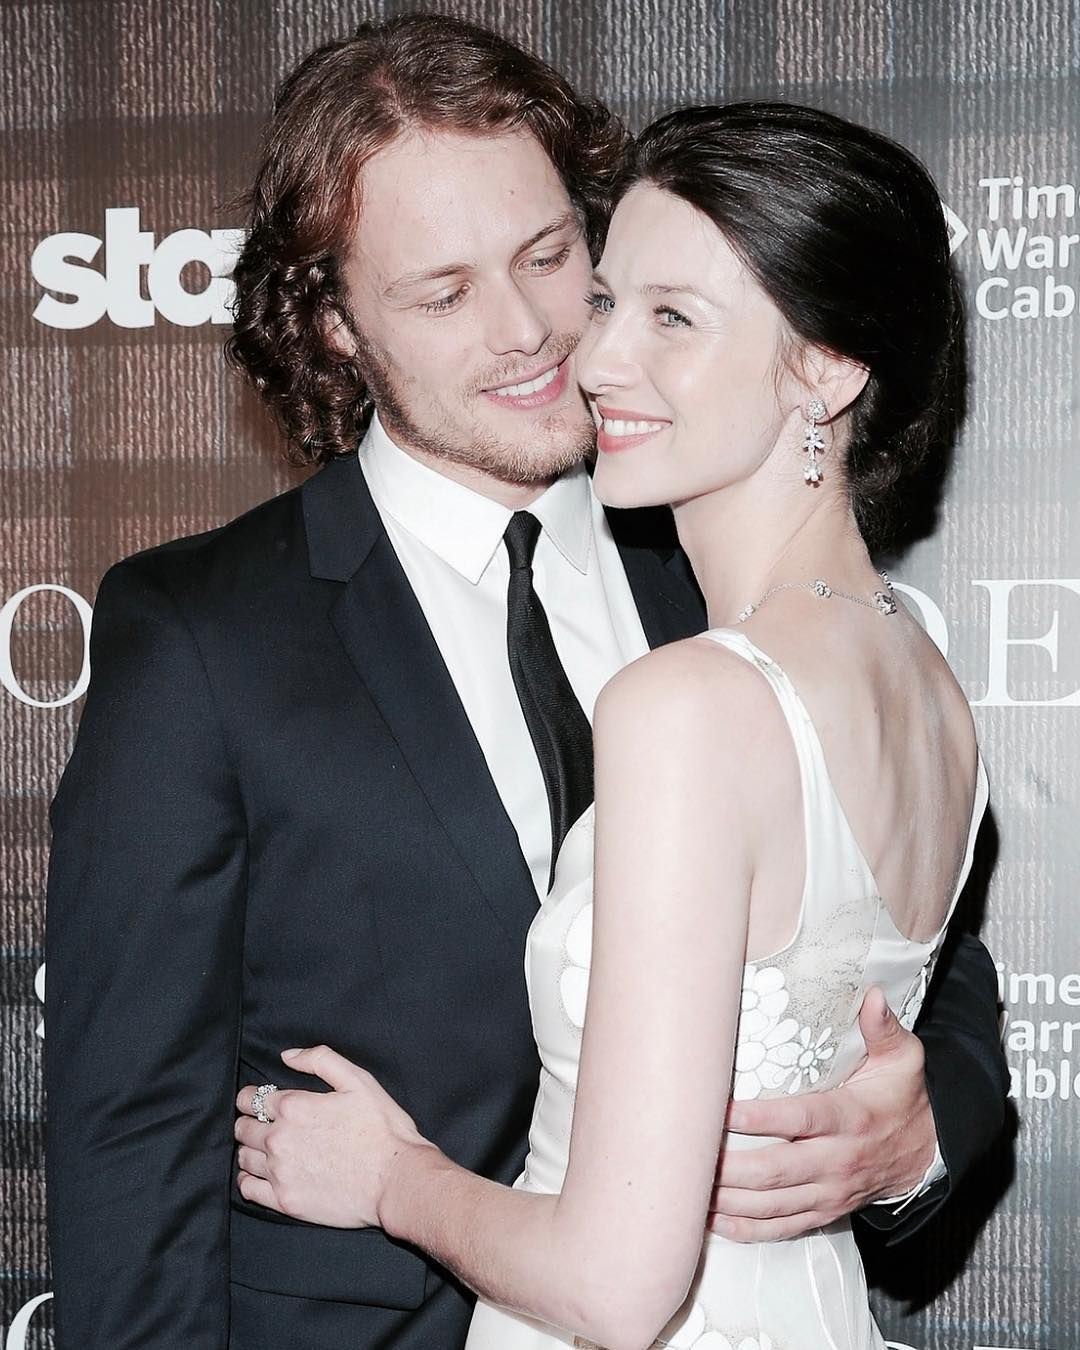 sam and cait not dating